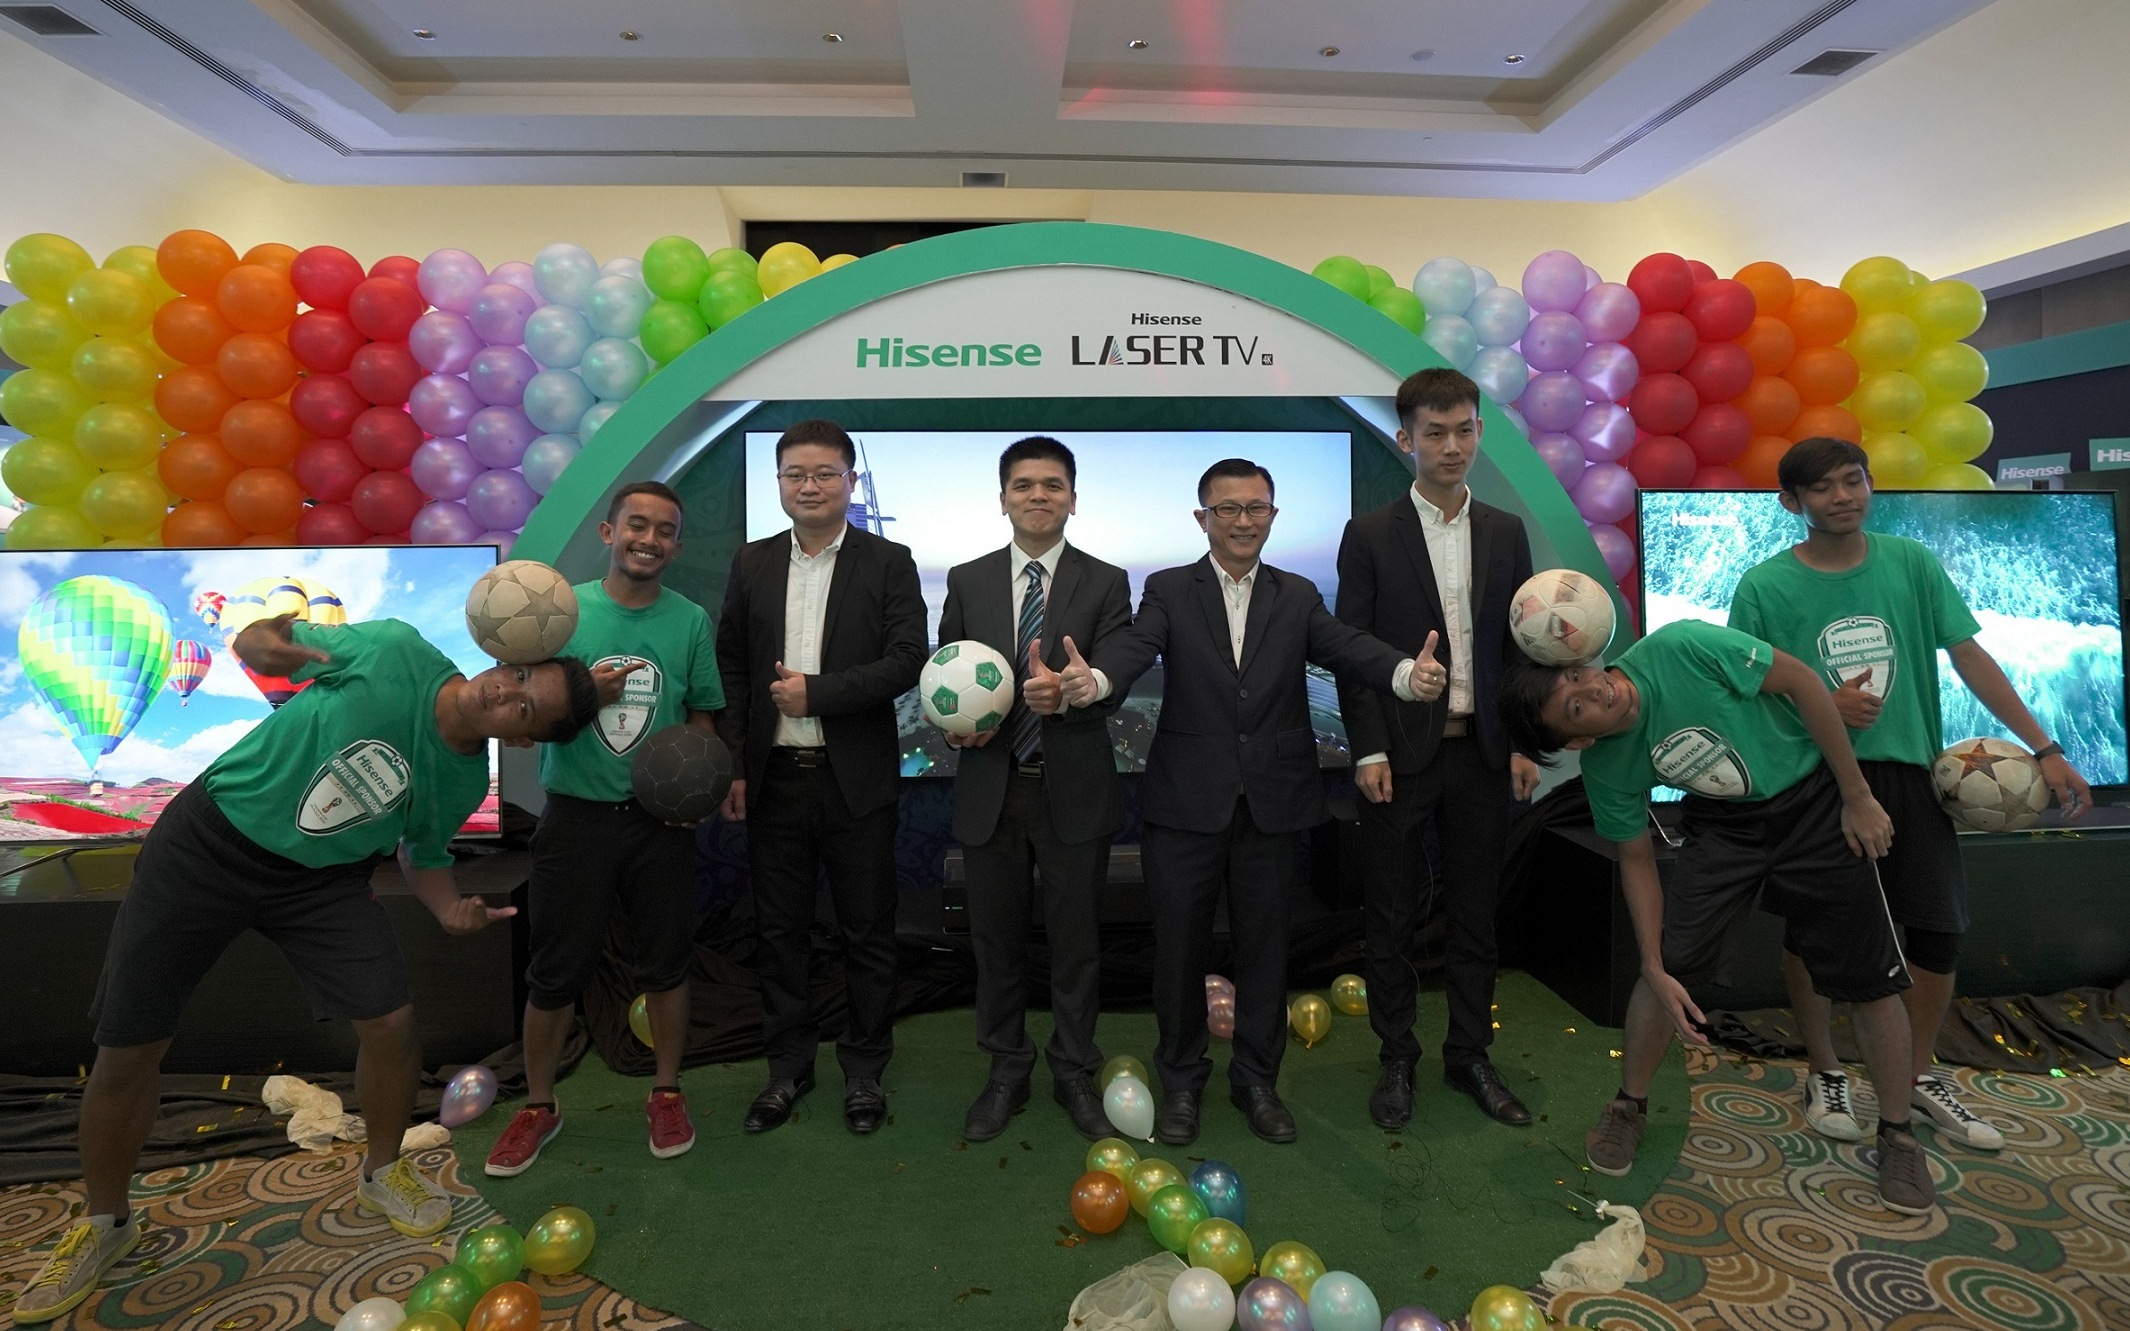 Get Ready for FIFA World Cup 2018 with Hisense U9A, U7A and Laser TV